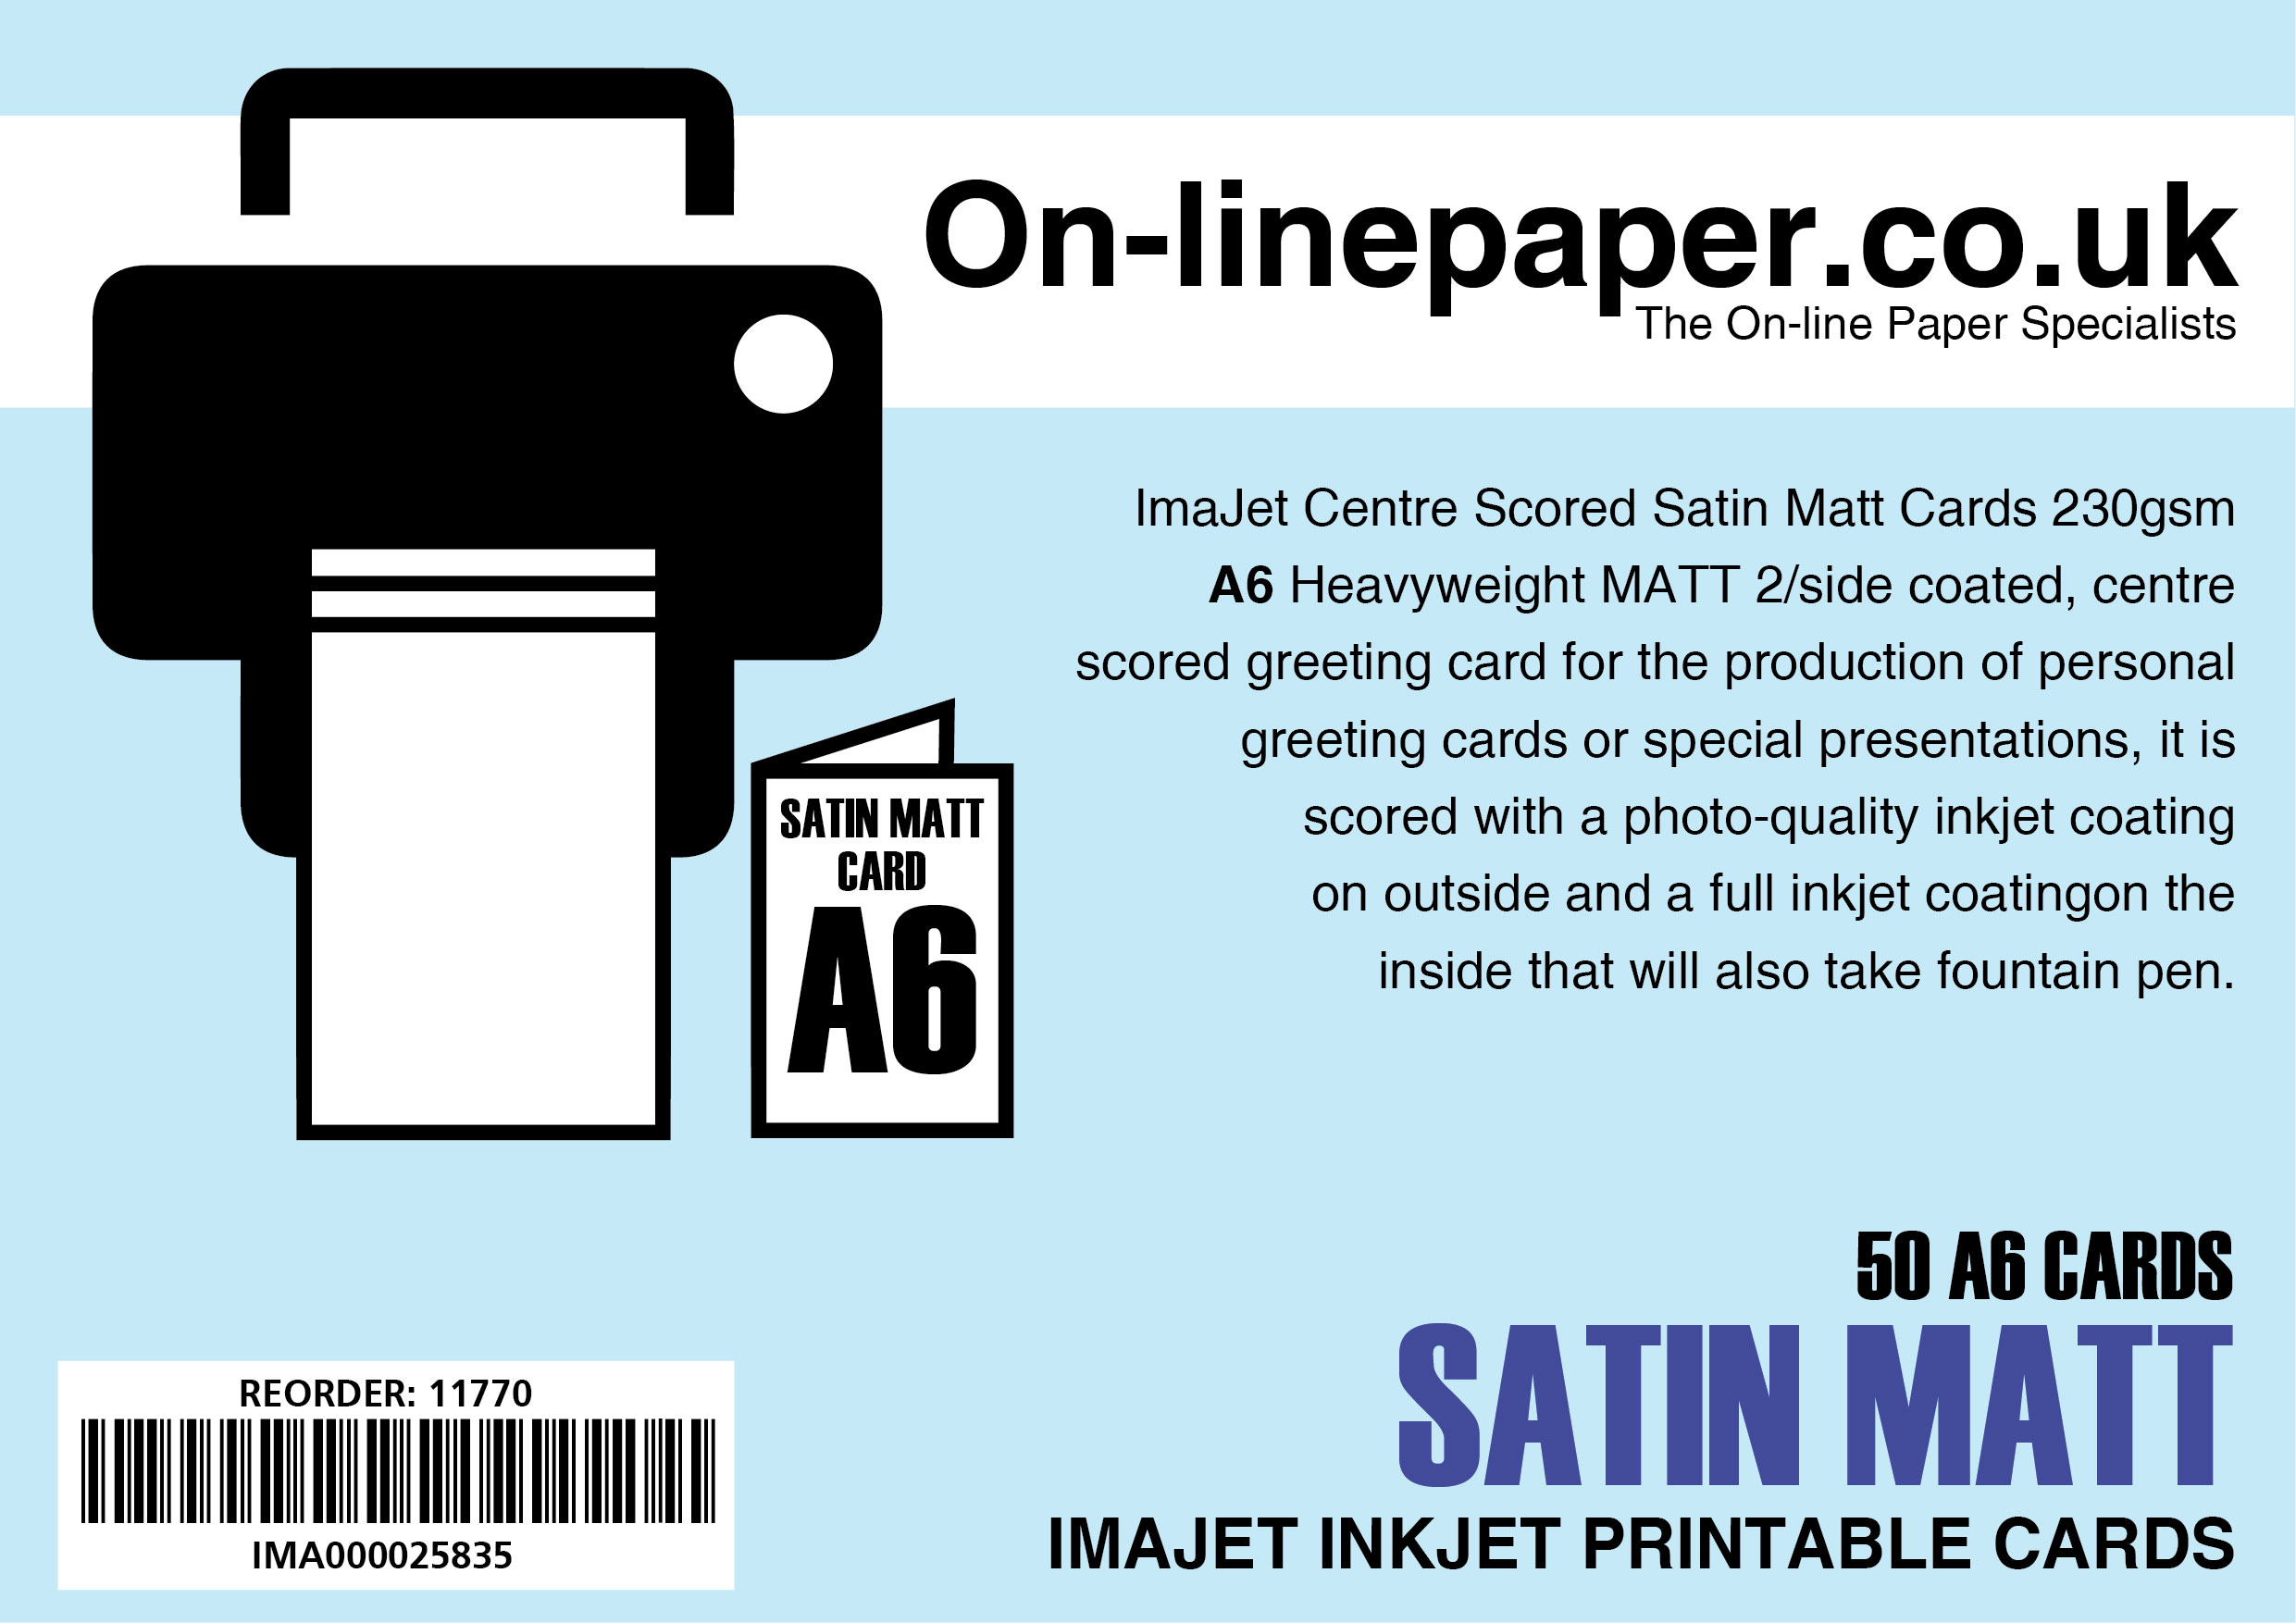 ImaJet Centre Scored SATIN-MATT Cards 230gsm 50 x A5 cards --> A6